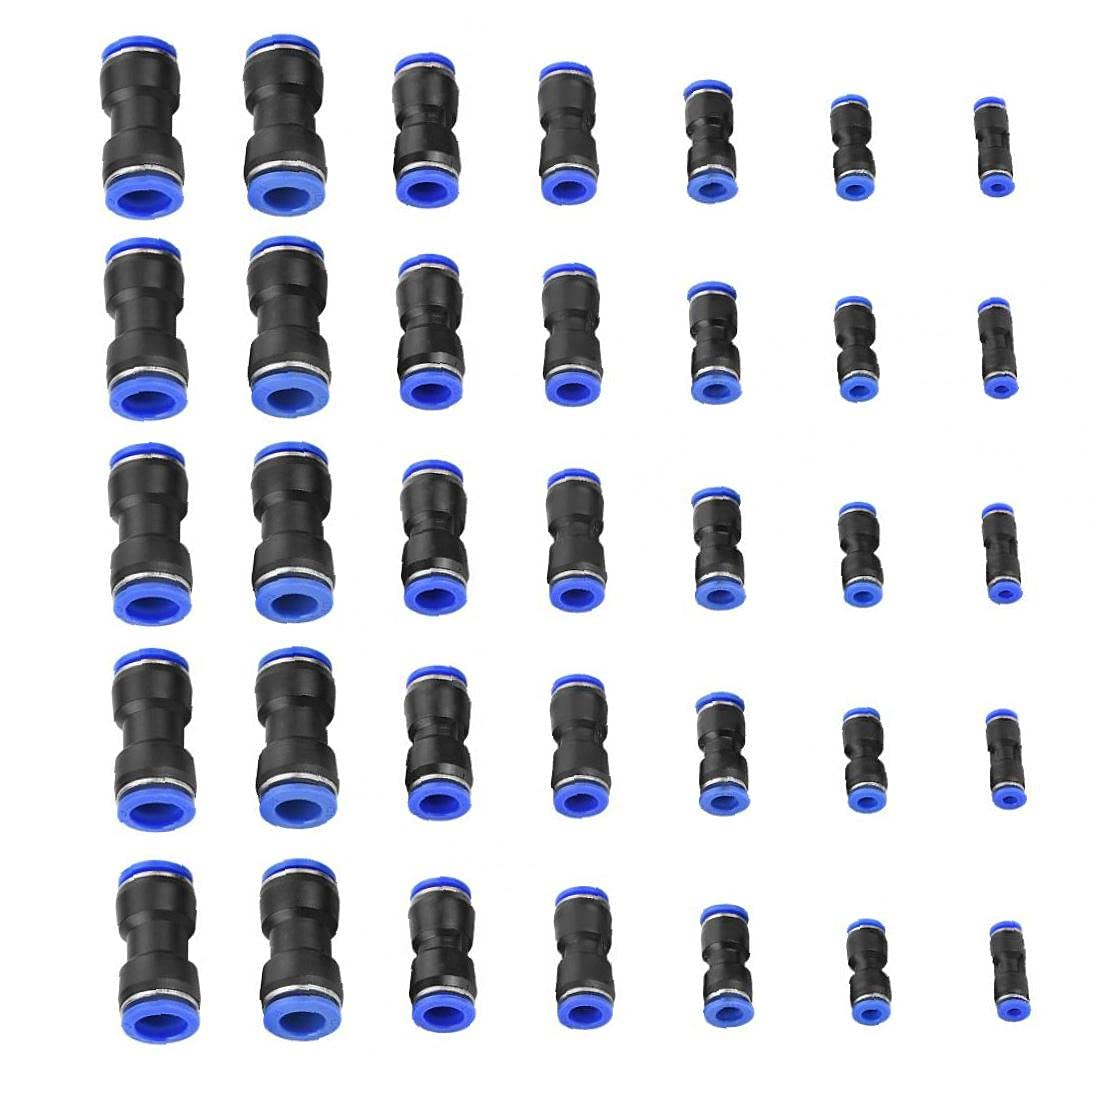 Pneumatic Fitting Set PU Plastic Air Popular Special price for a limited time shop is the lowest price challenge Hose 1 6 4 8 Connectors for